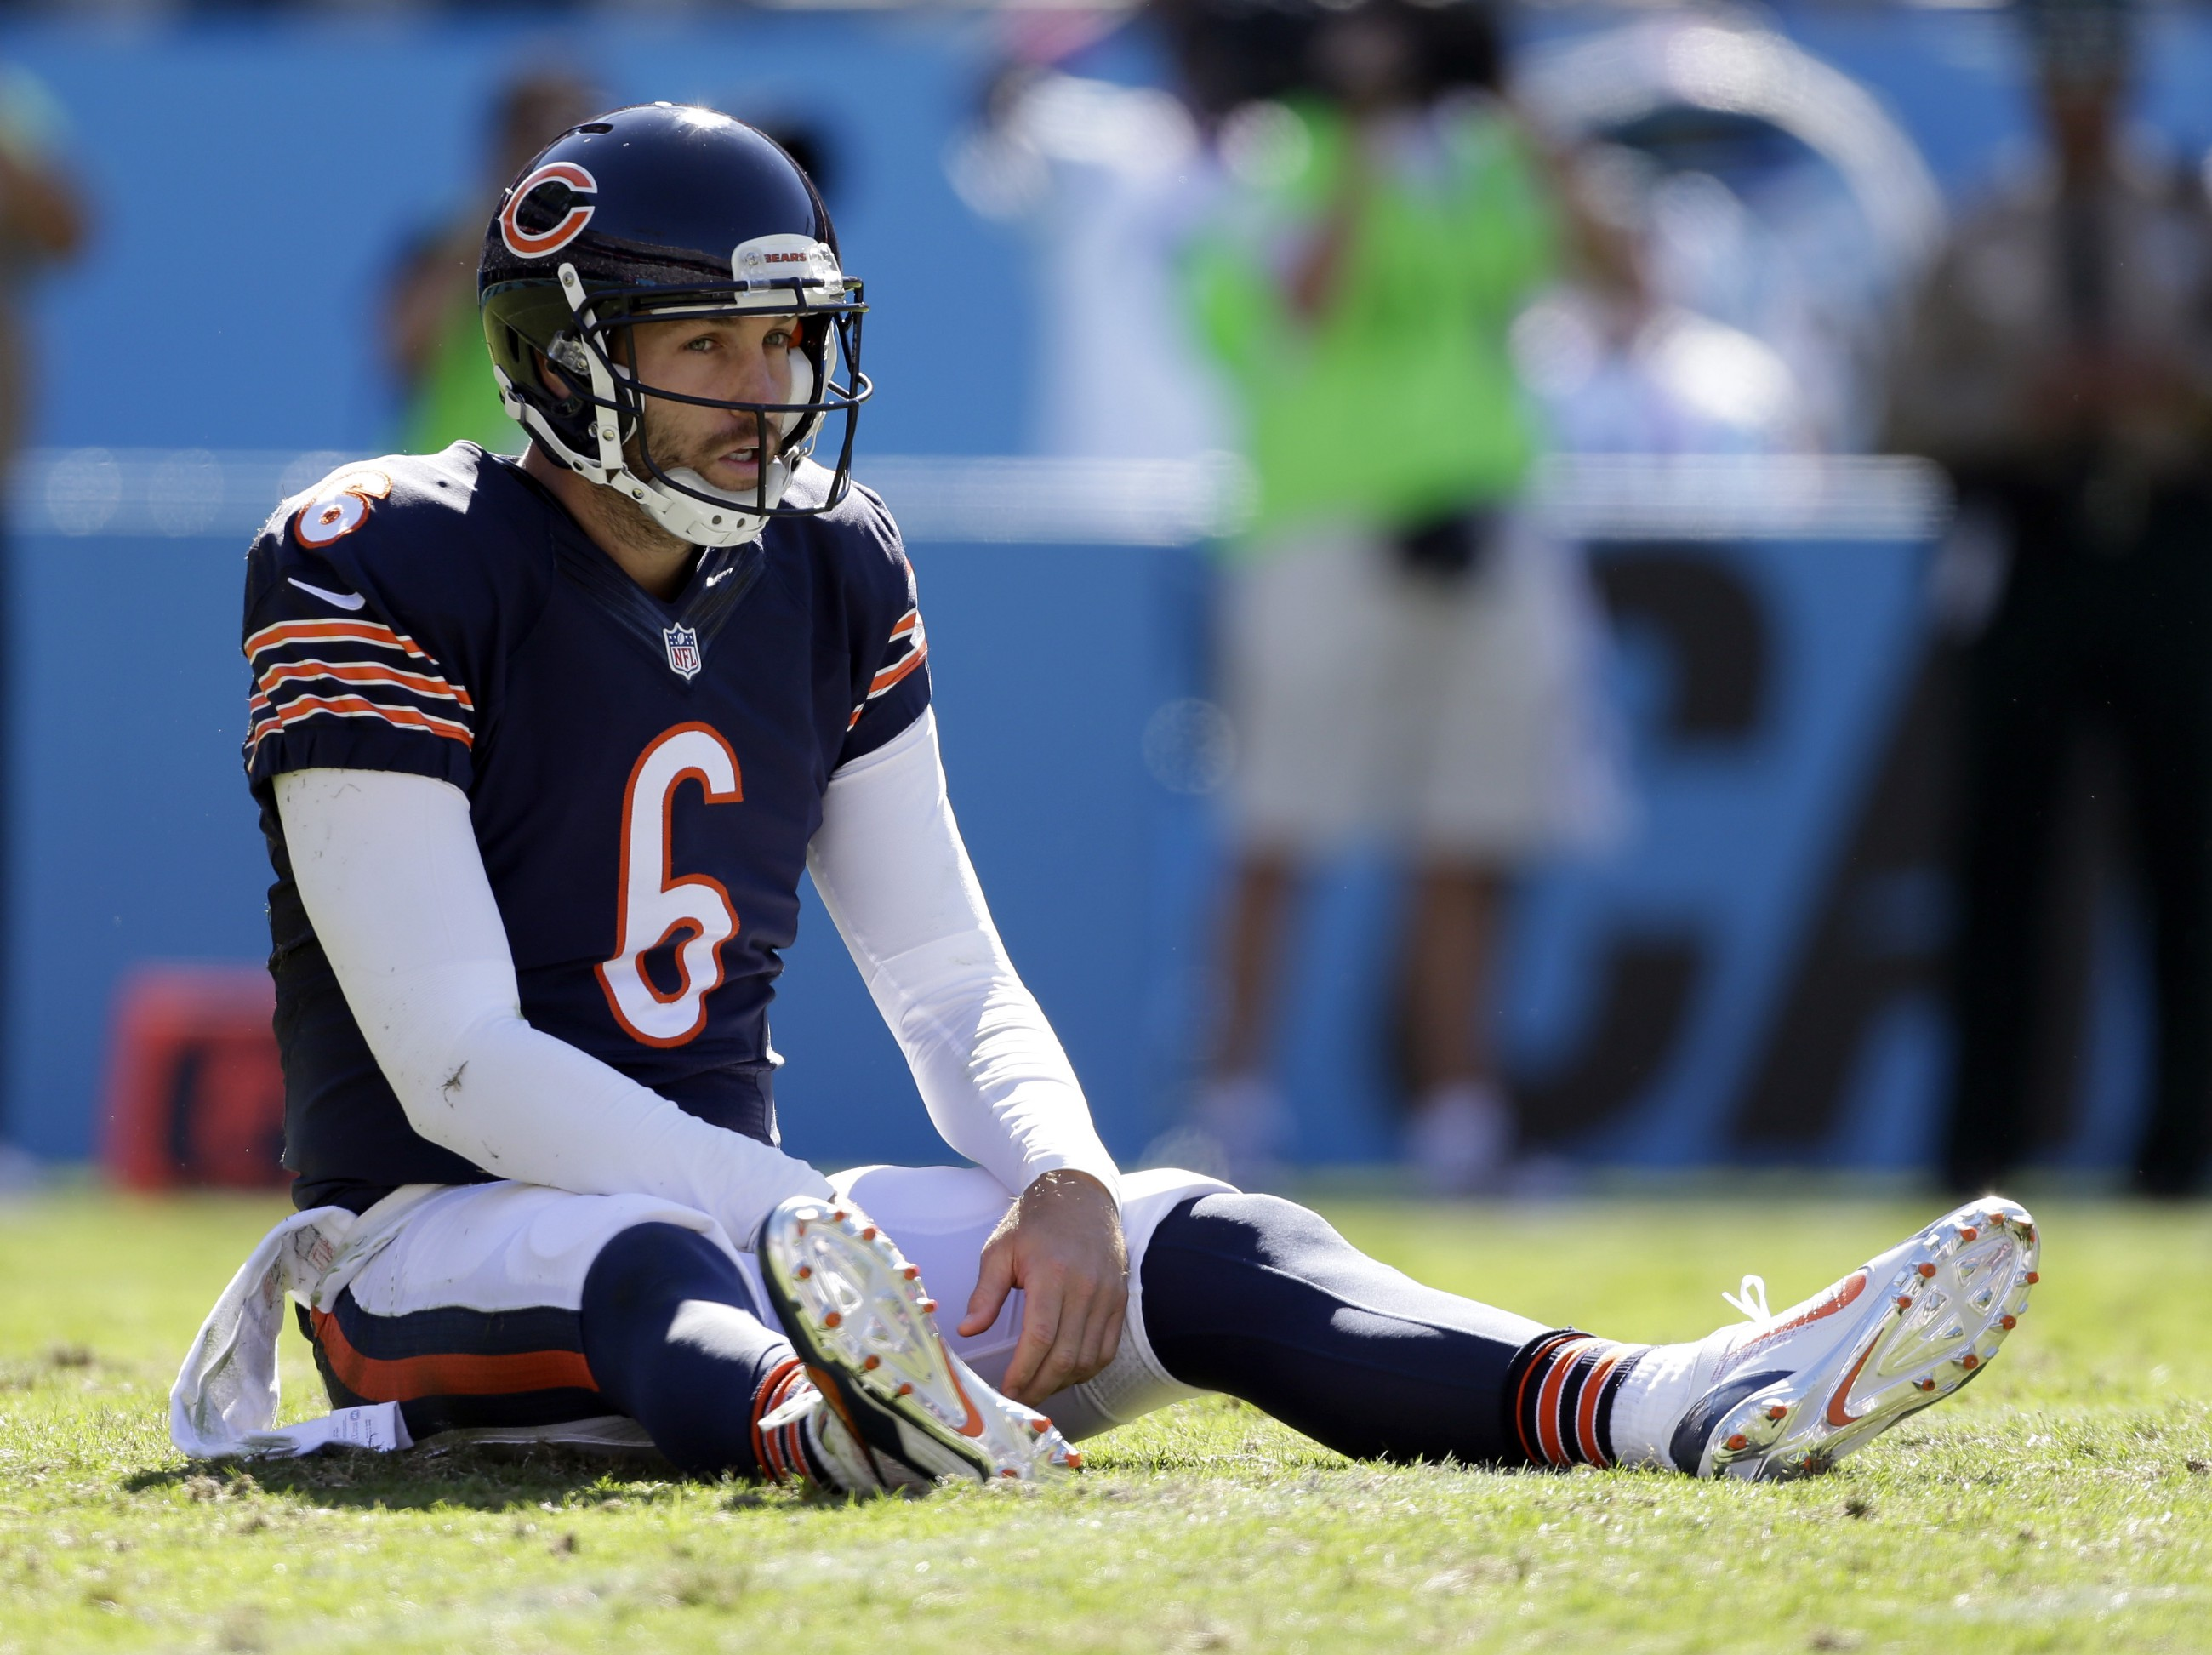 591089efb1c I Love That Jay Cutler Doesn t Care That I Love Him